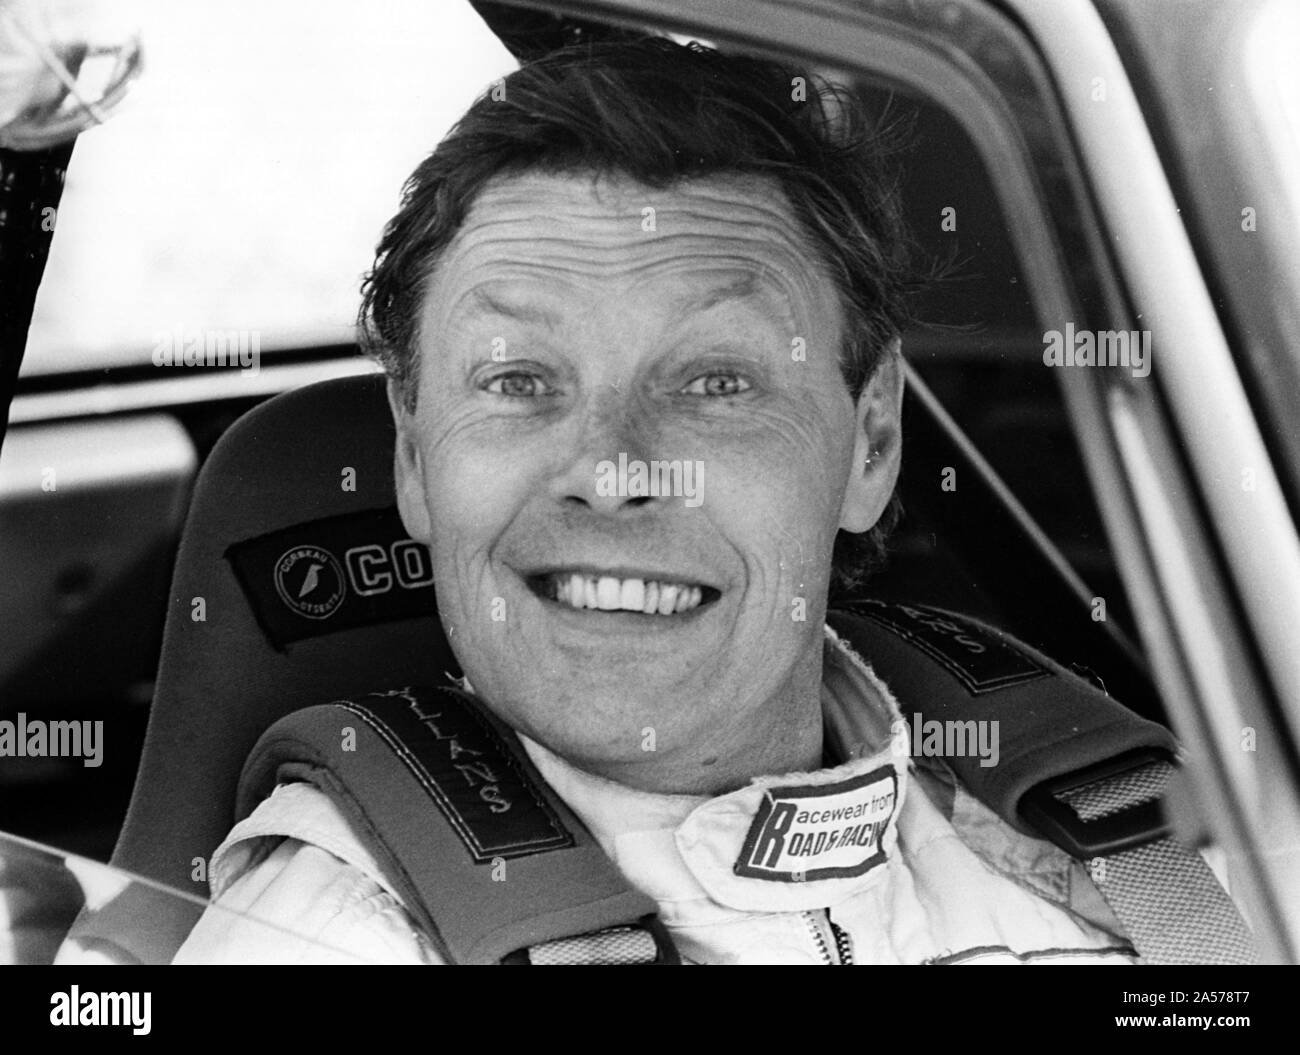 """Barrie """"Whizzo Williams"""" racing driver. Stock Photo"""